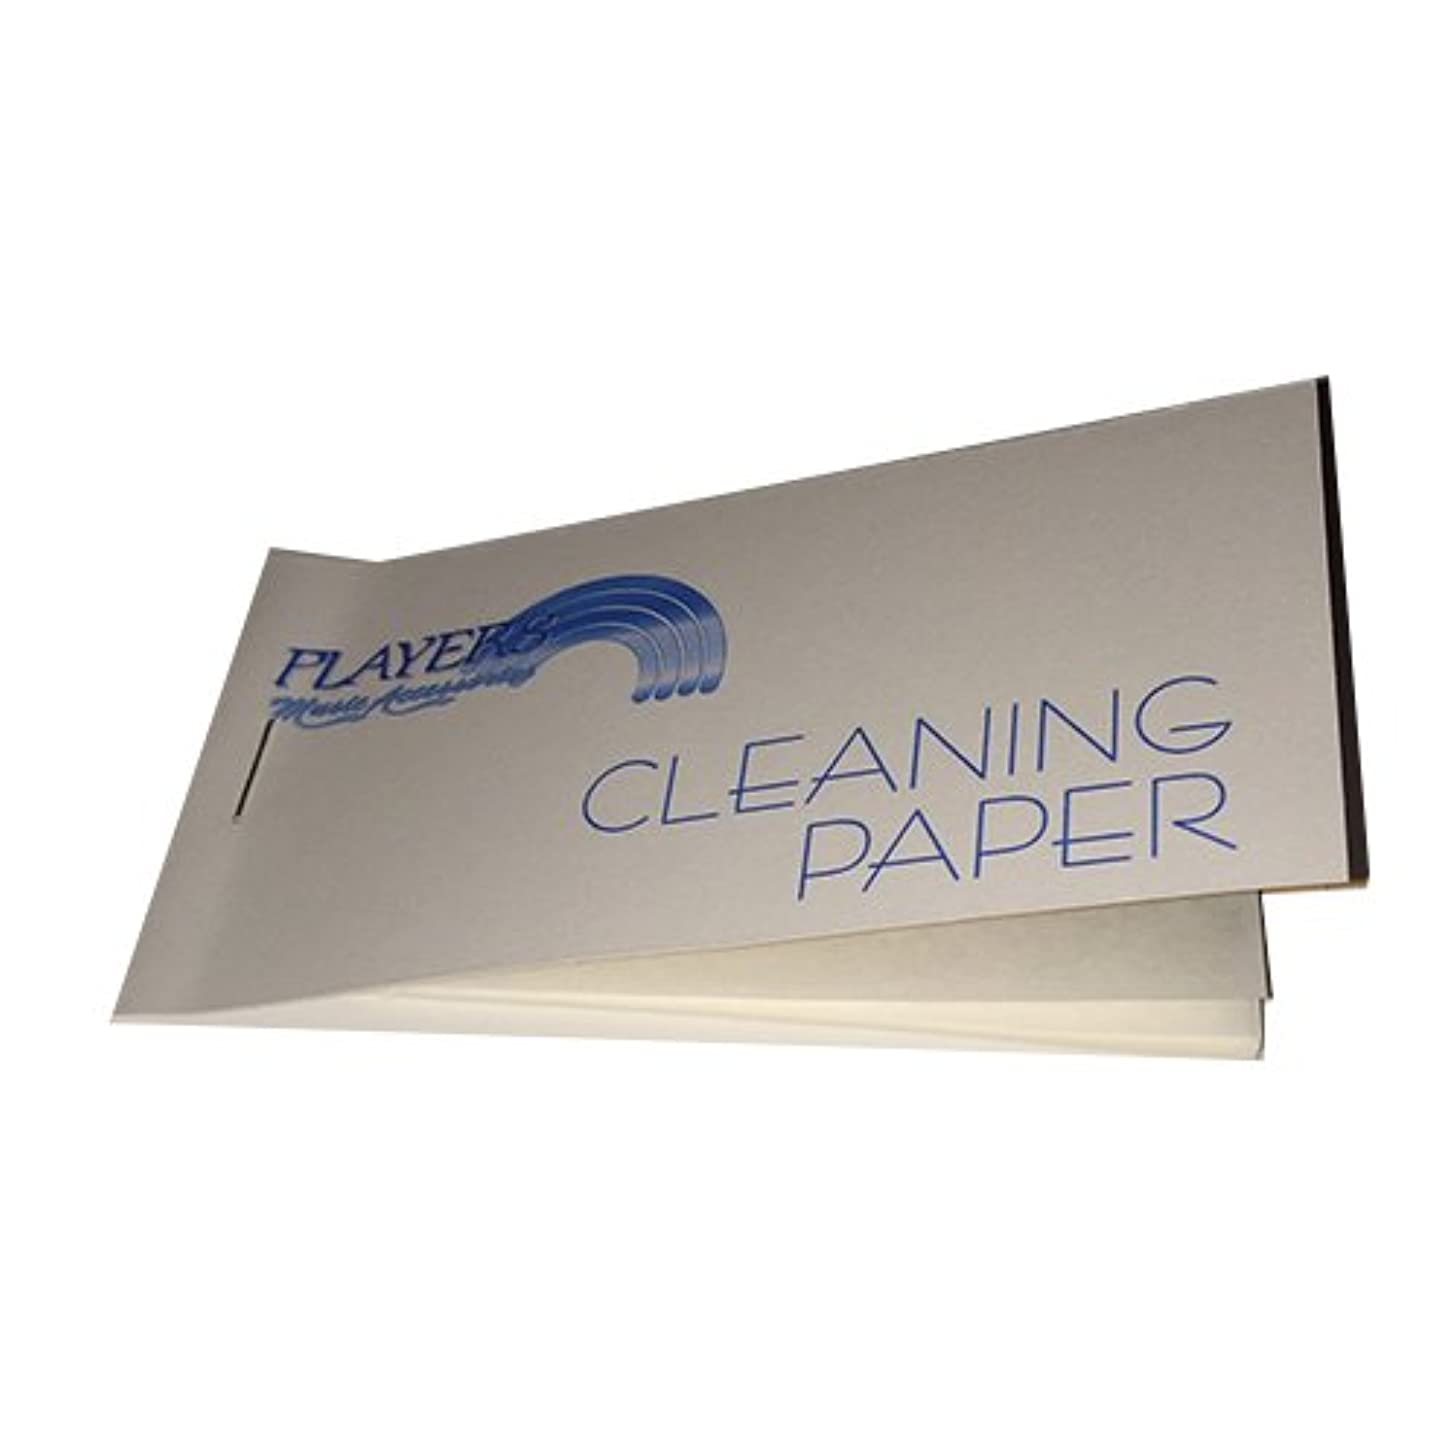 Oboe Pad Cleaning Paper - Magic solution for sticky pads